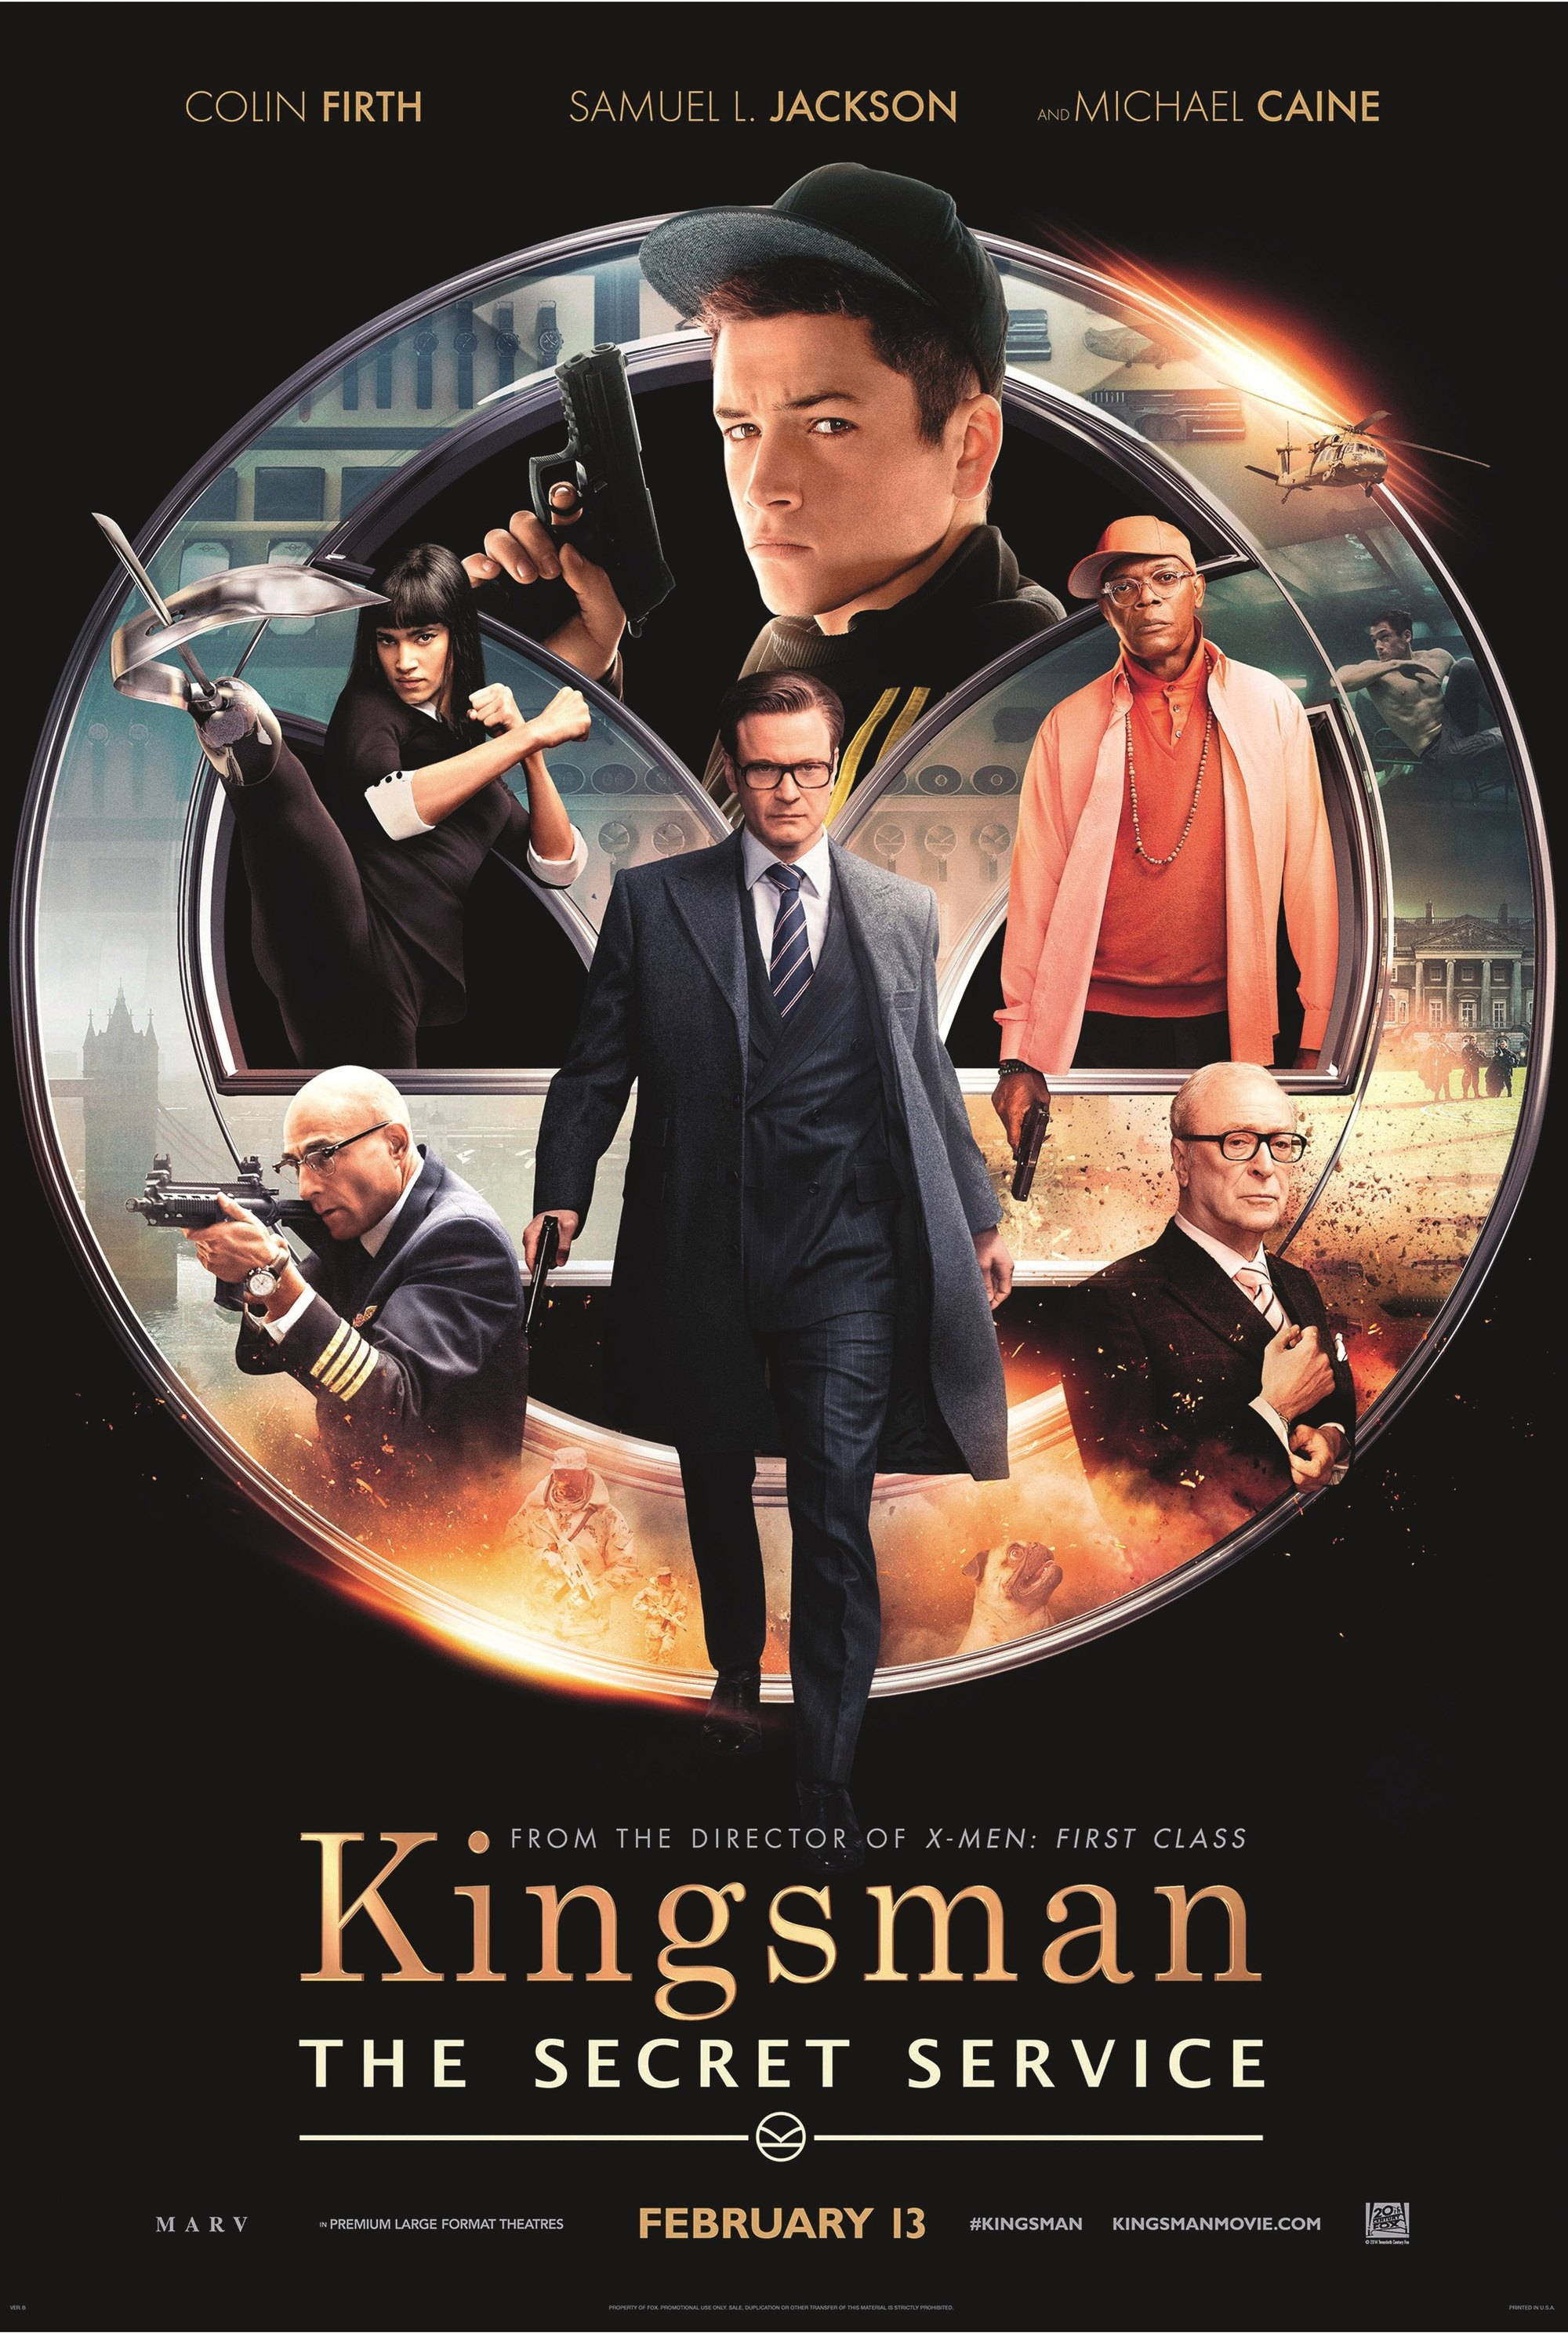 Kingsman: The Secret Service, by Matthew Vaughn, 2015.